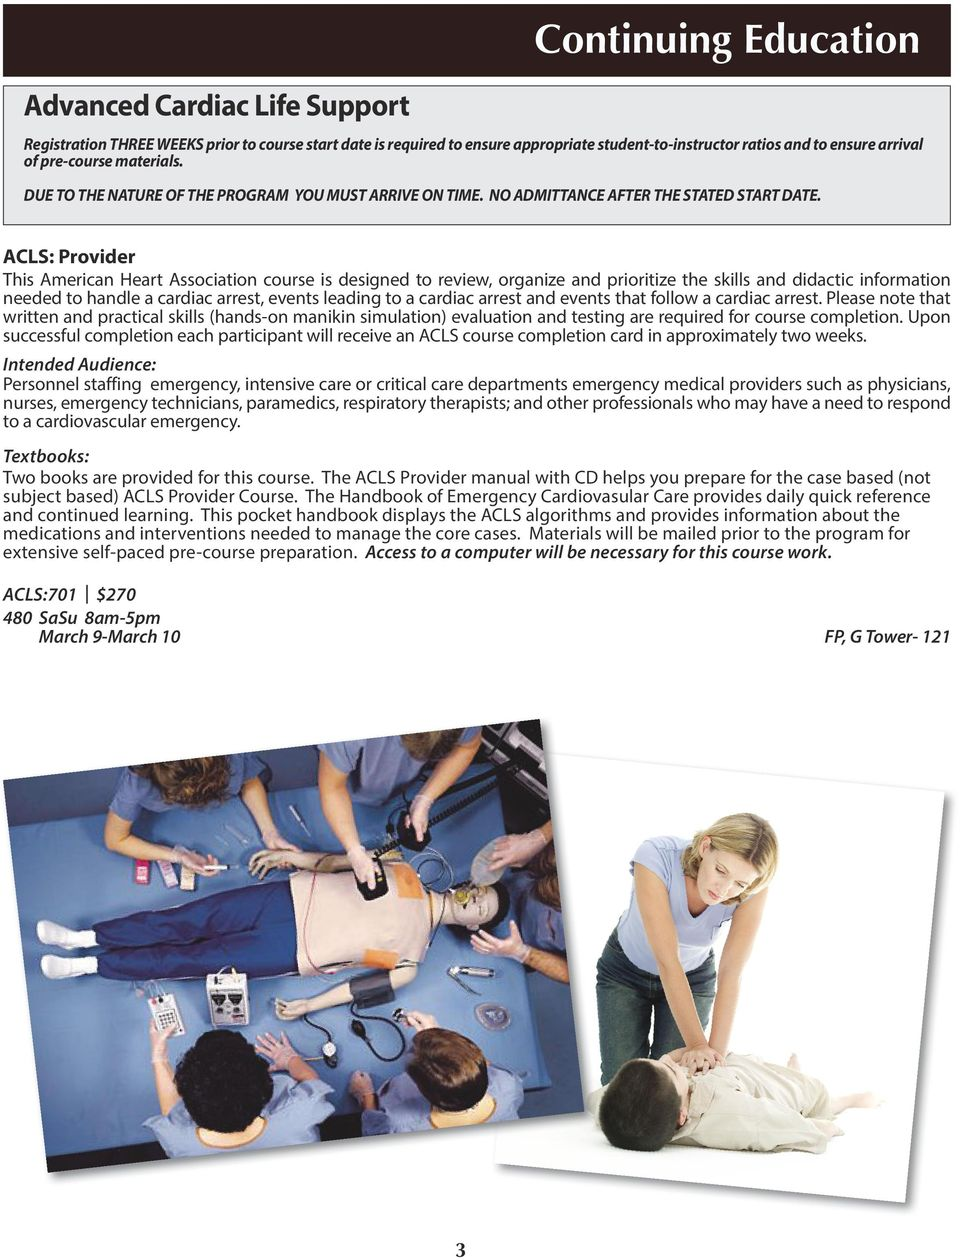 ACLS: Provider This American Heart Association course is designed to review, organize and prioritize the skills and didactic information needed to handle a cardiac arrest, events leading to a cardiac